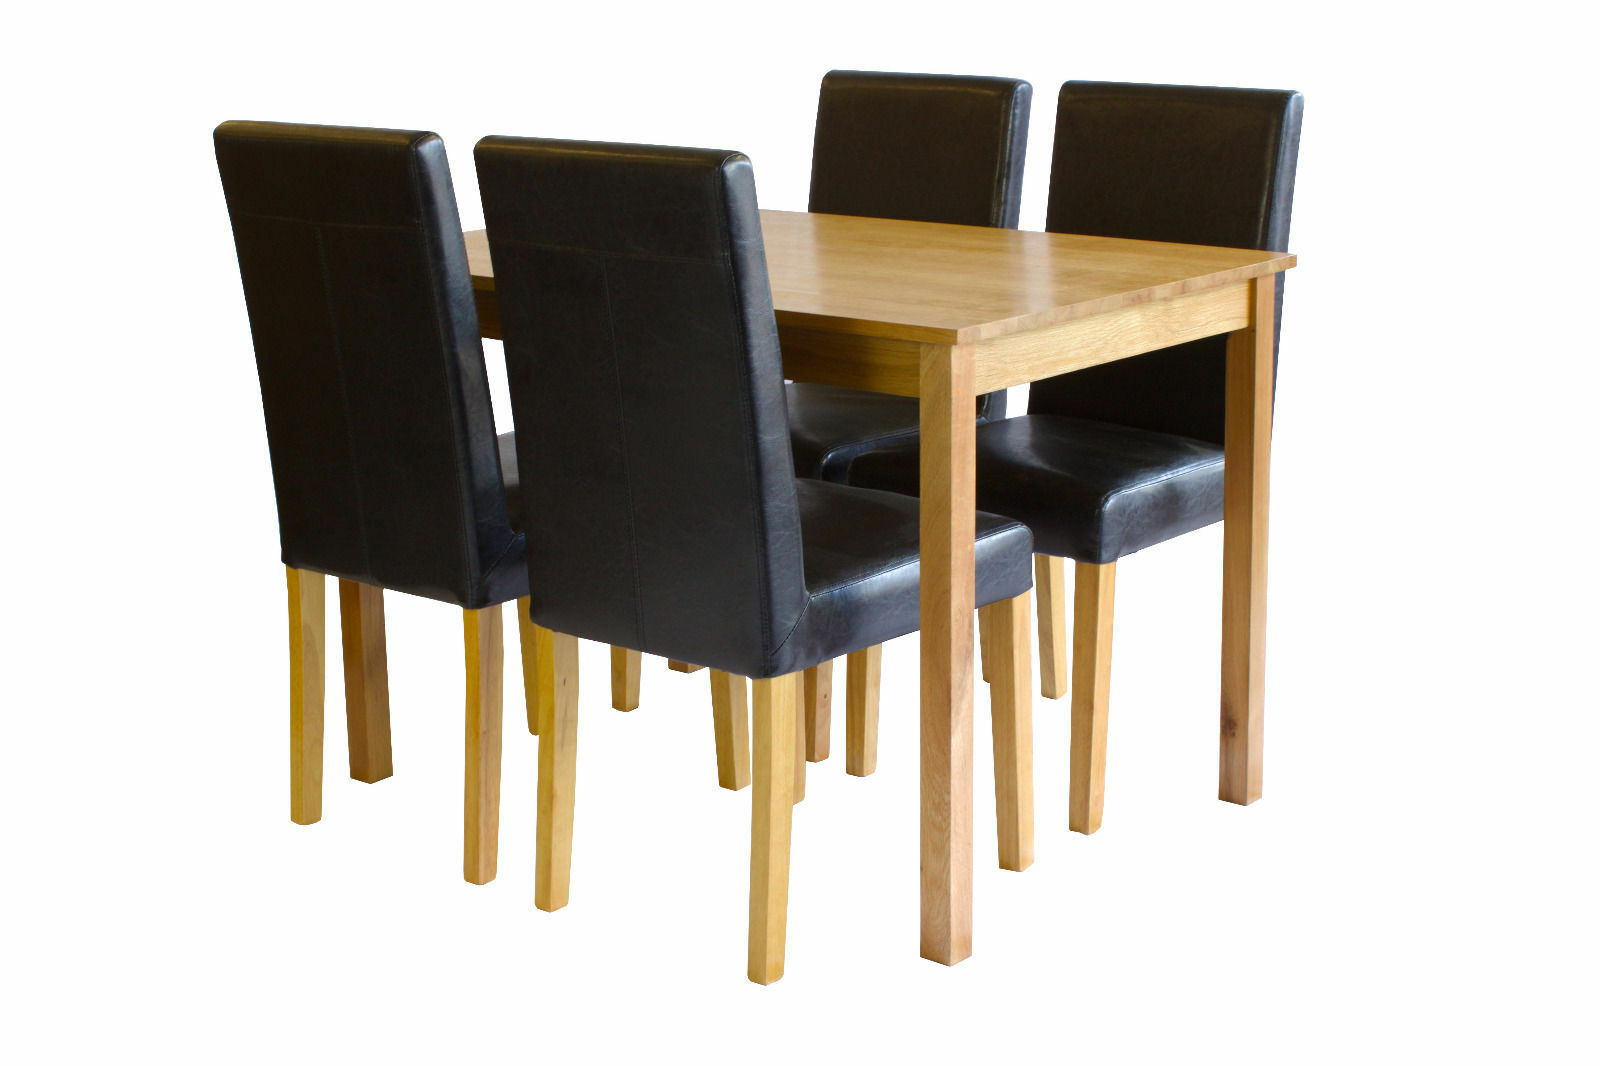 IKEA NORRALA, Table, Seats 4 6. For